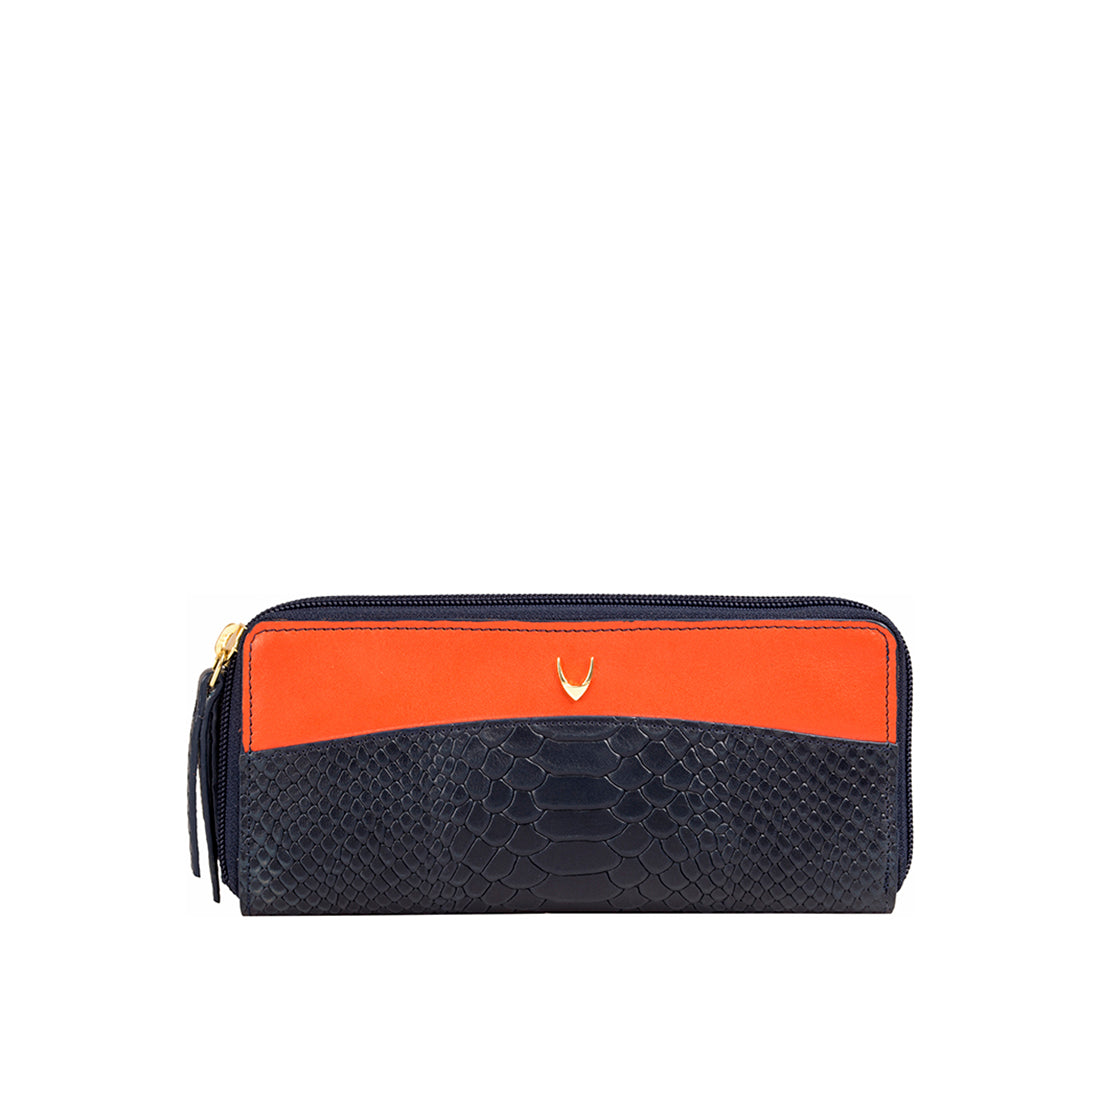 EE VIRGO W3 DOUBLE ZIP AROUND WALLET